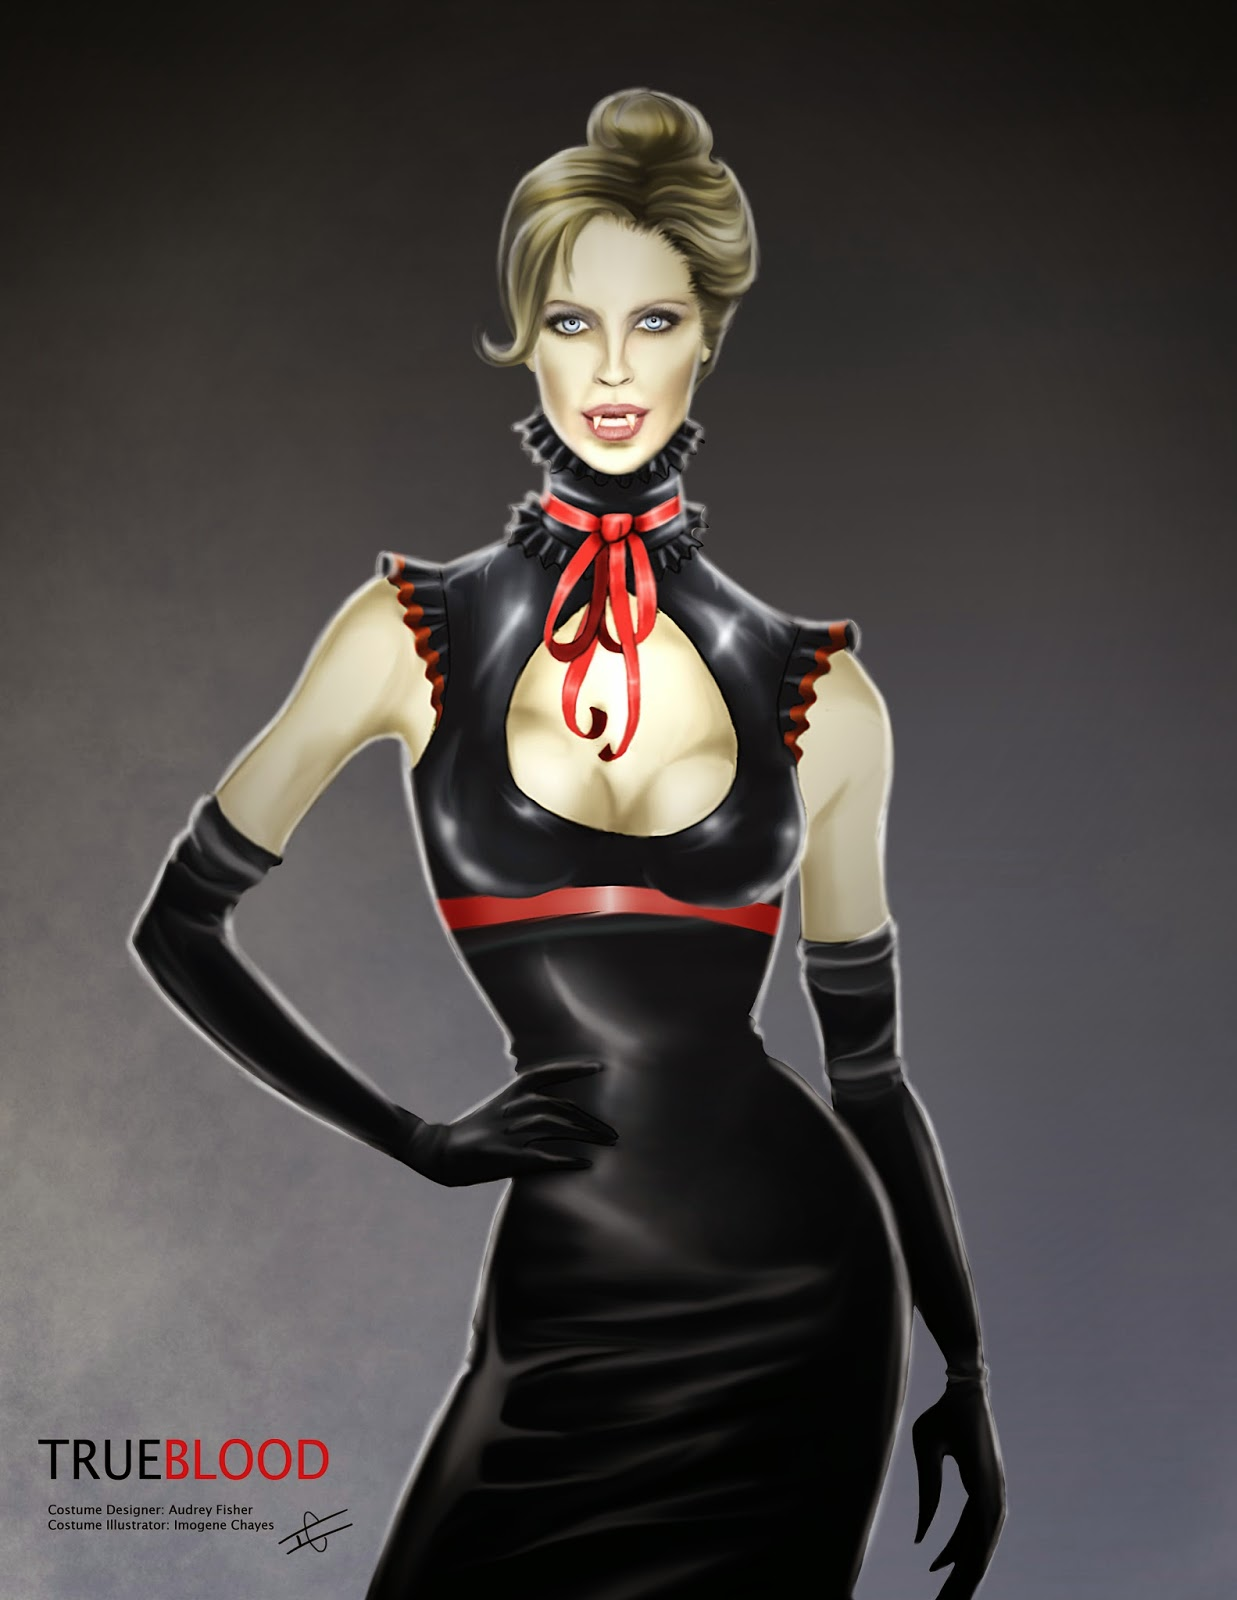 d4c9c68176 Illustratrix the art of imogene ann kilar true blood comic con jpg  1237x1600 True blood costumes